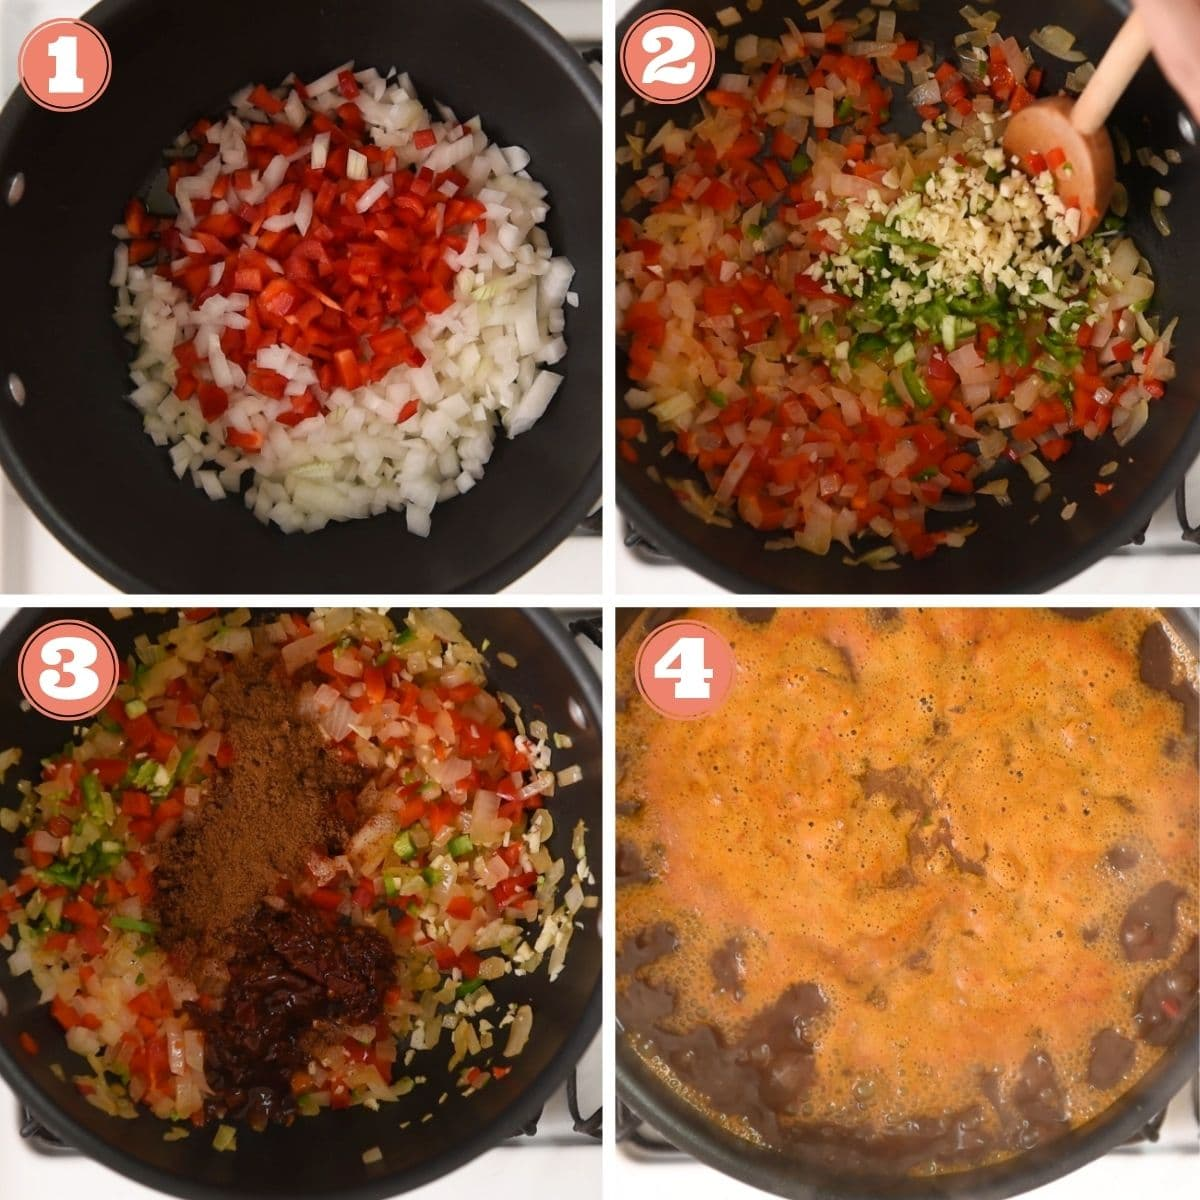 Steps 1 through 4 to make black bean soup